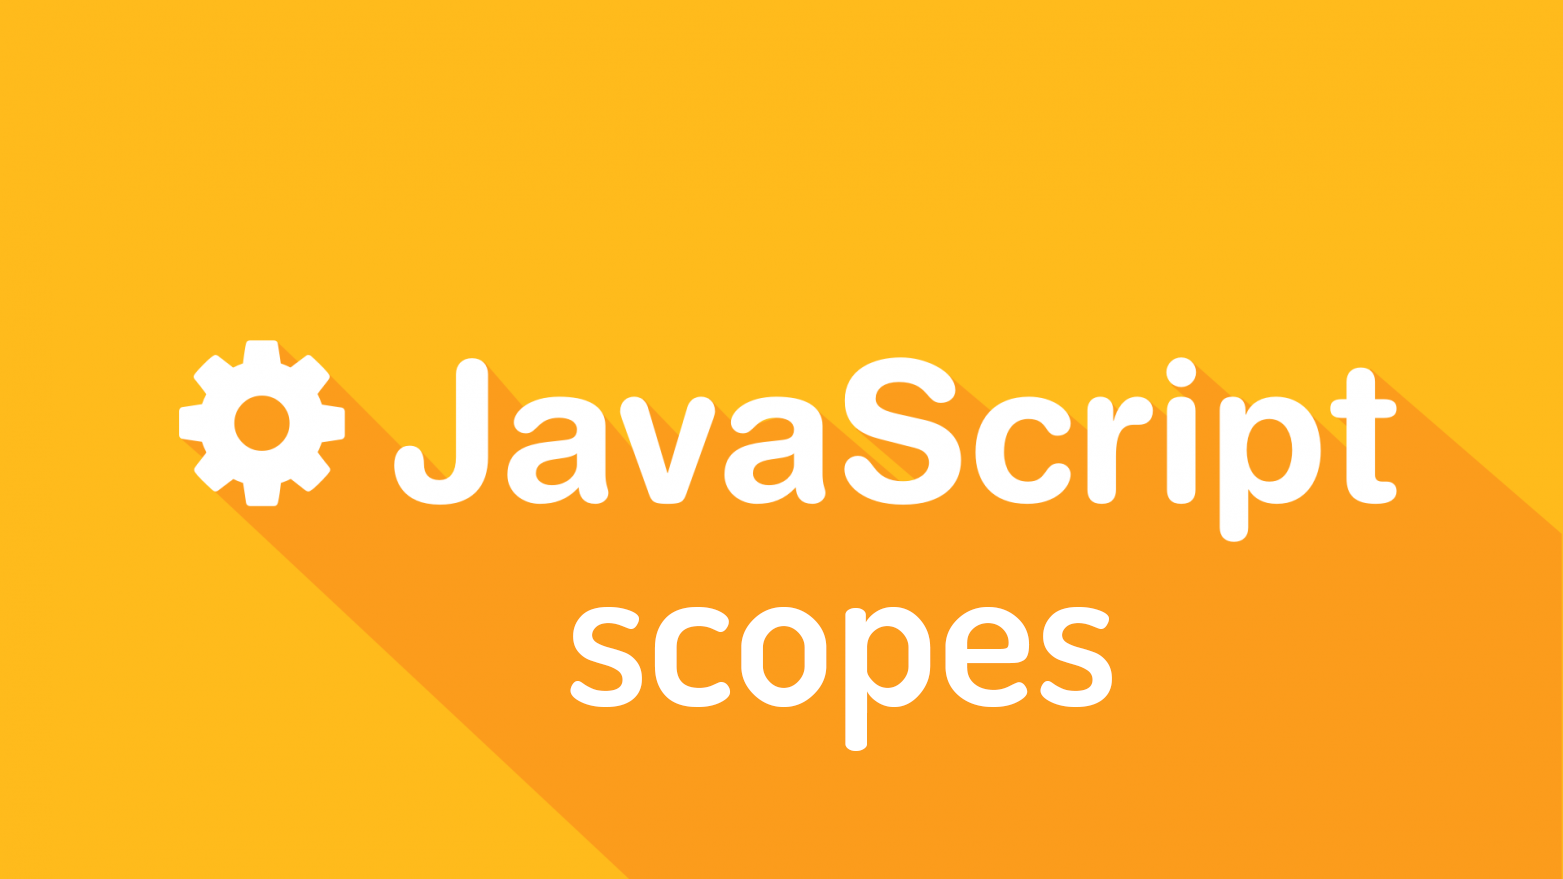 javascript Scope